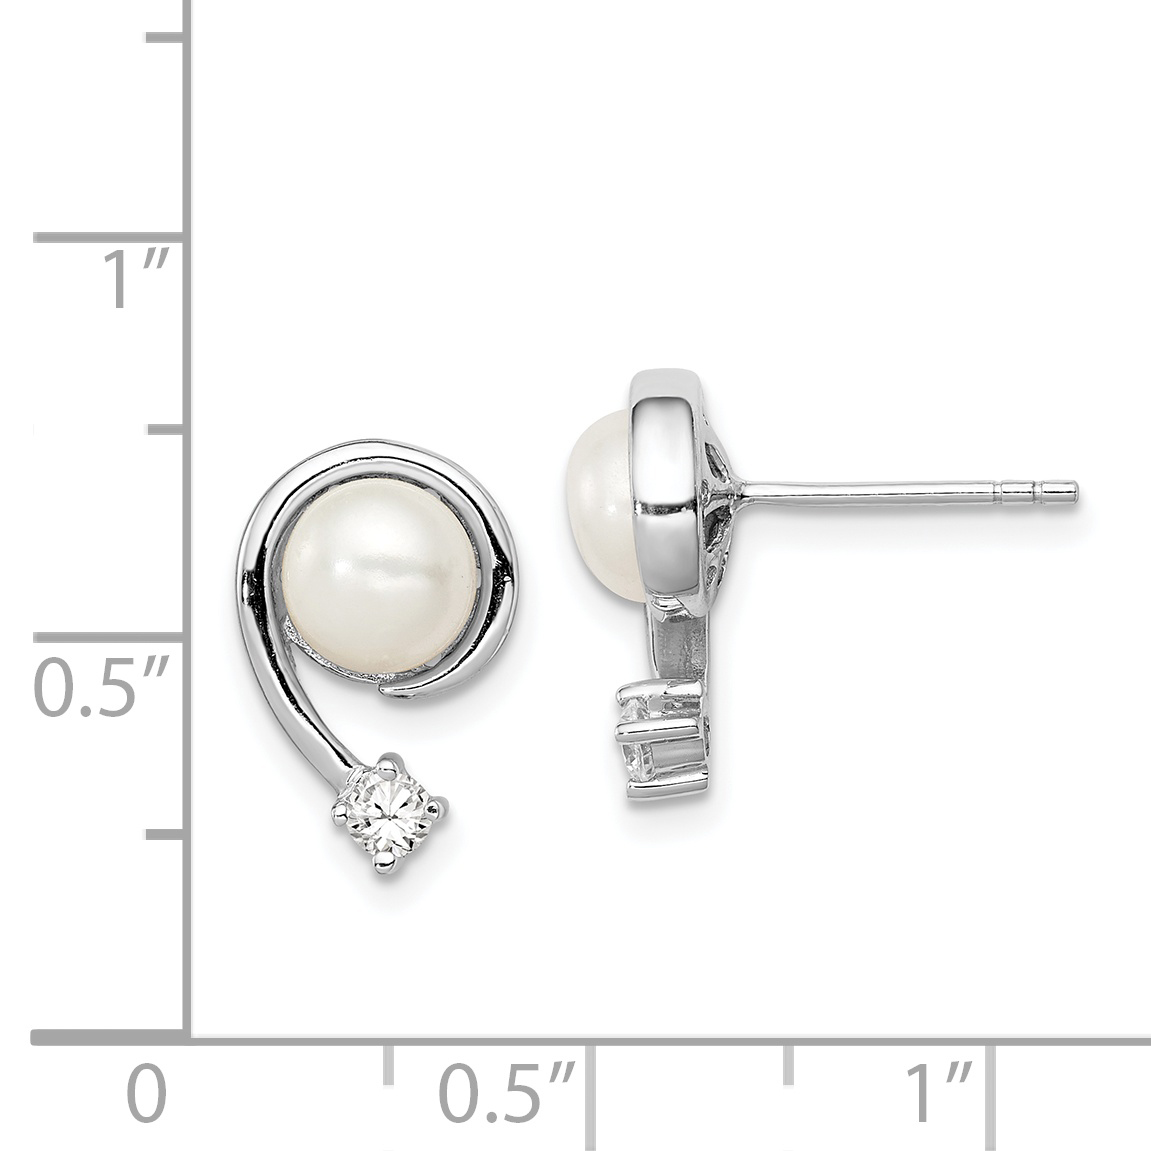 925 Sterling Silver 8mm White Freshwater Cultured Pearl Cubic Zirconia Cz Post Stud Earrings Ball Button Fine Jewelry Gifts For Women For Her - image 1 de 2